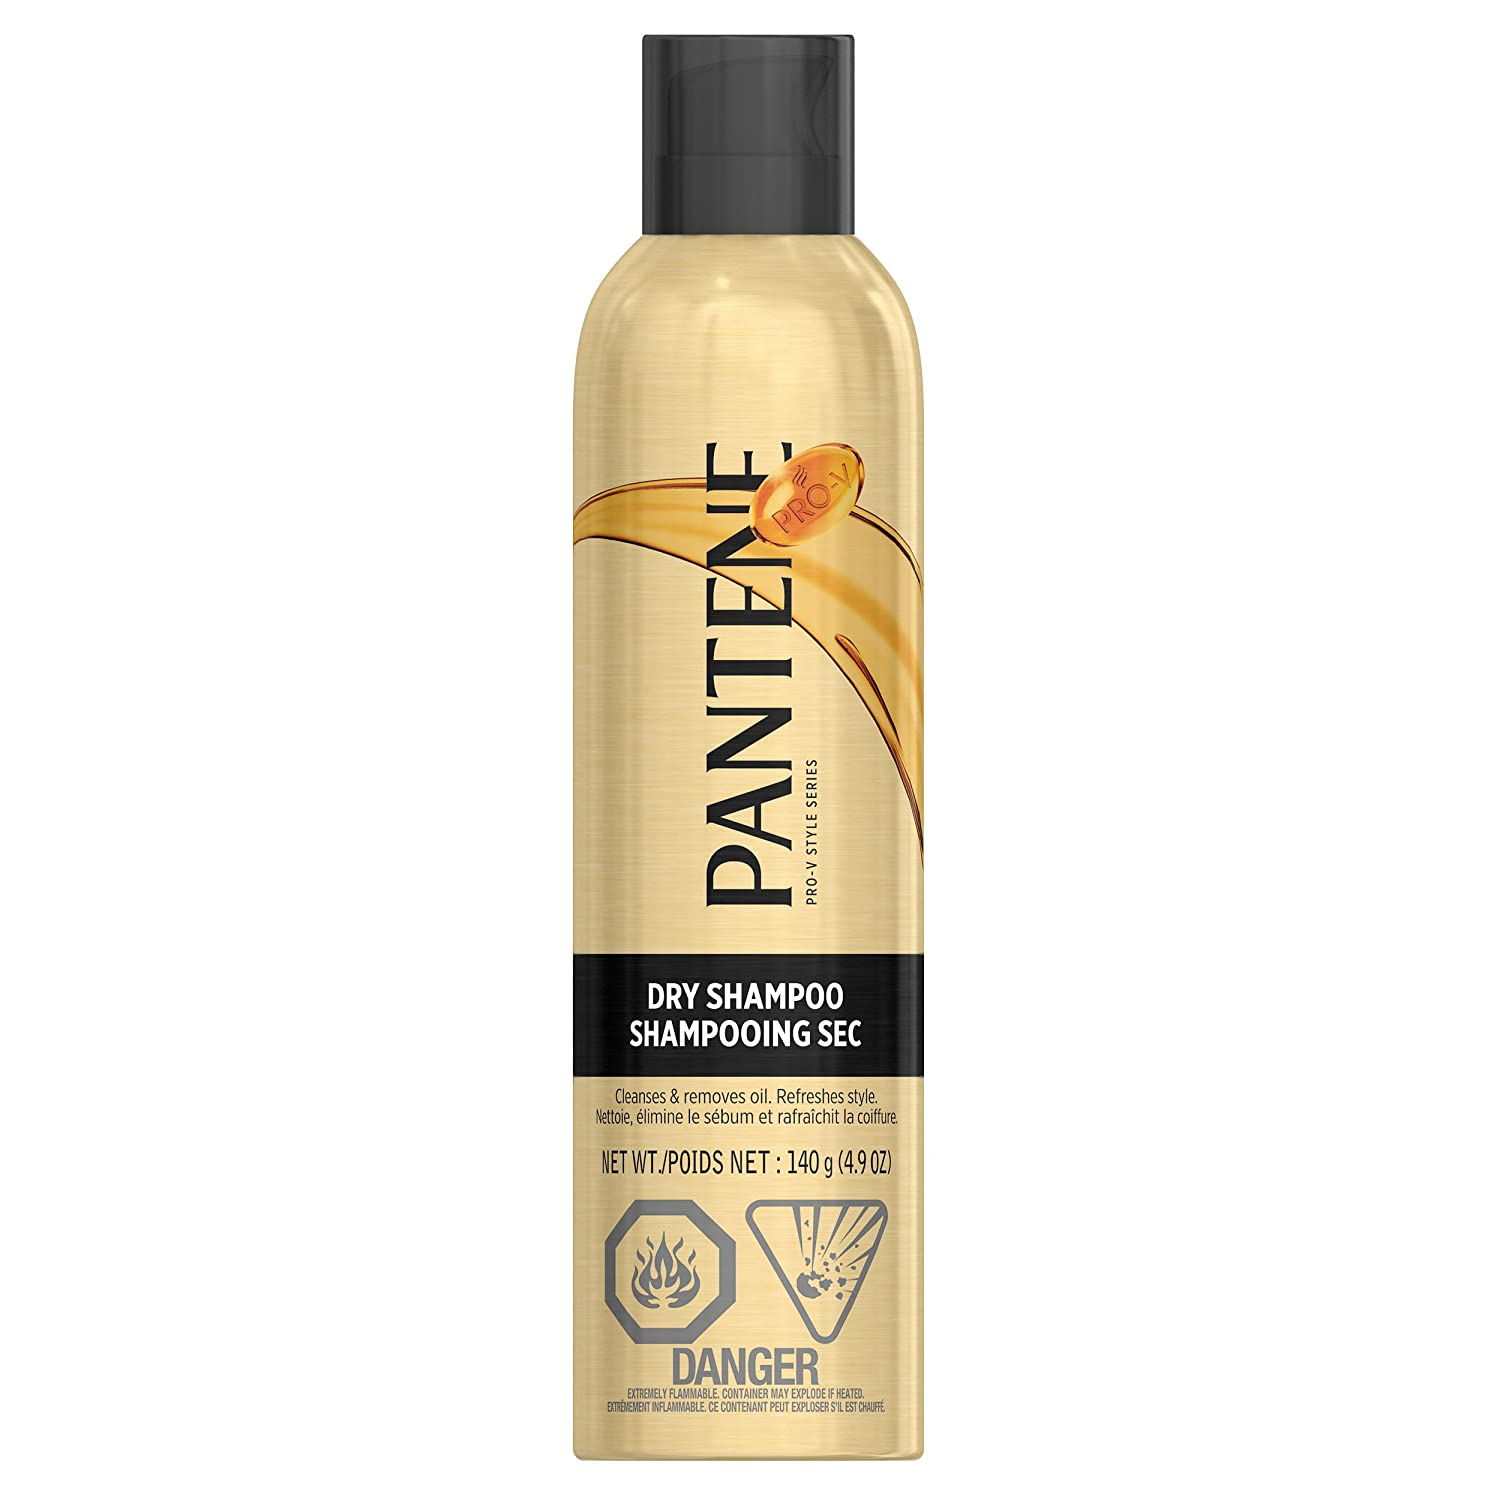 Pantene Pro-V Dry Shampoo Clean and Fresh 140 g(packaging may vary)